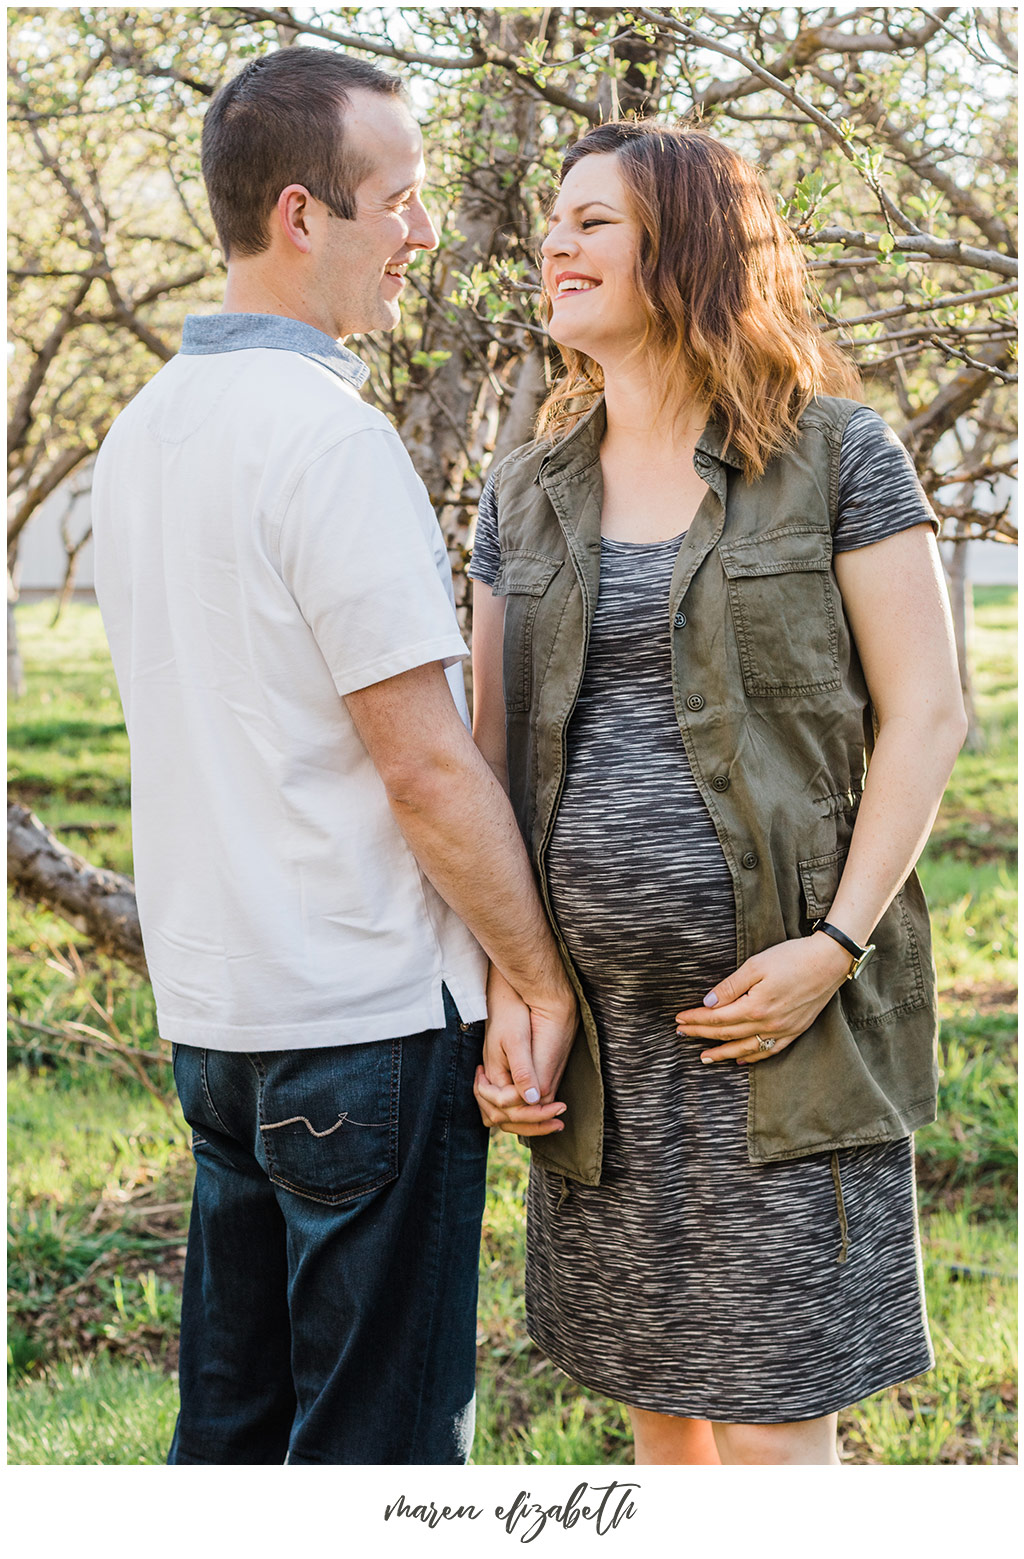 Family Pictures in a Spring Orchard. Maternity Family Pictures with Toddler   Arizona Family Photographer   Maren Elizabeth Photography